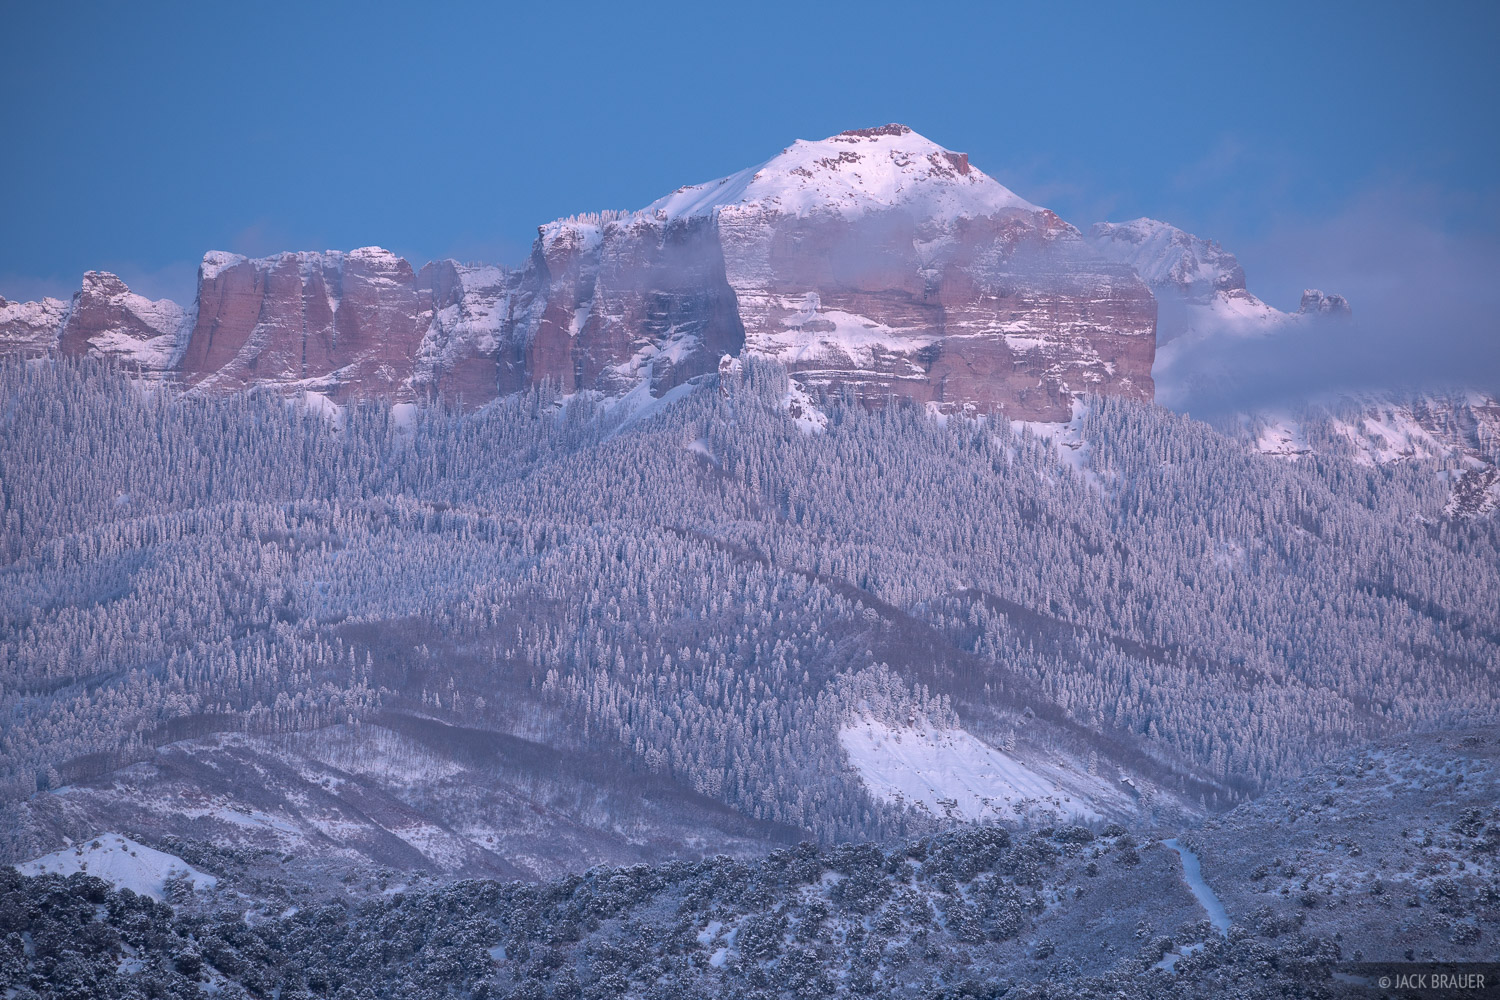 Dusk glow on snow smothered Courthouse Mountain in December.